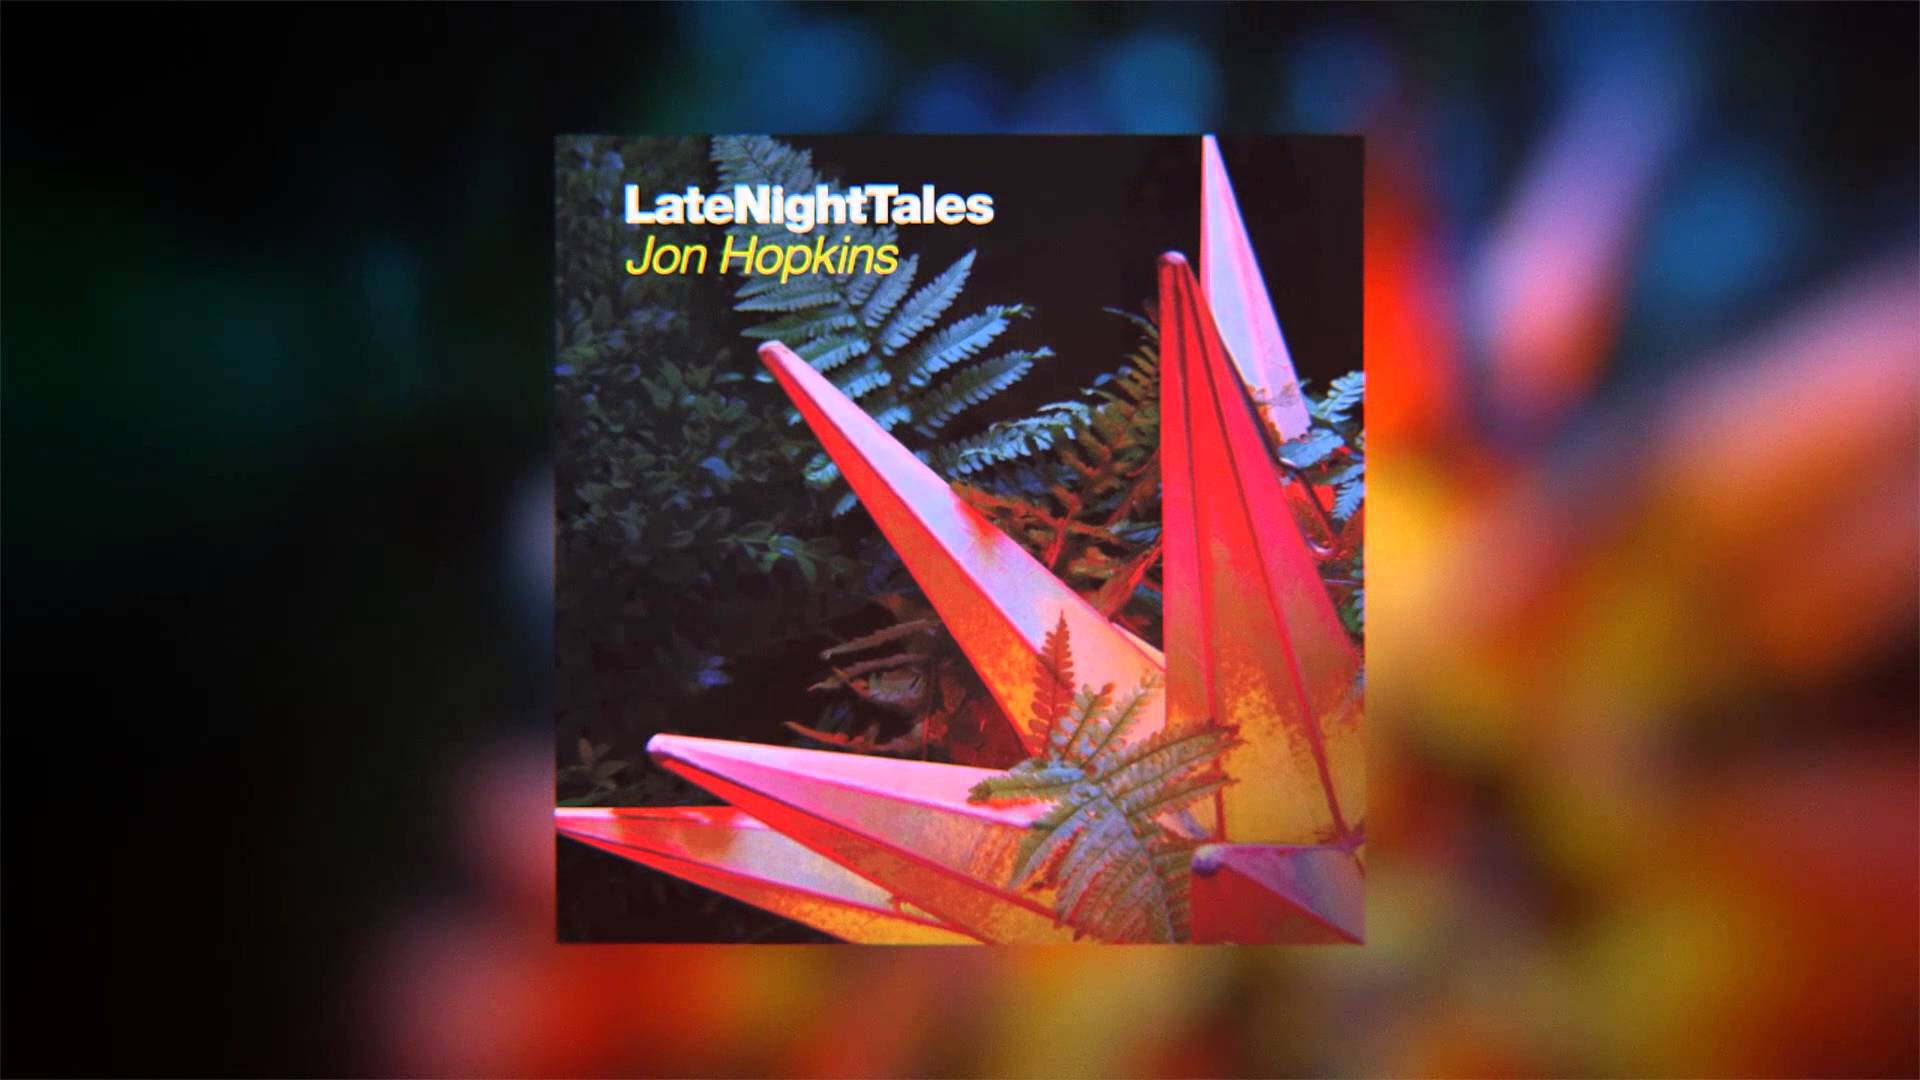 Jon Hopkins - Late Night Tales / Review